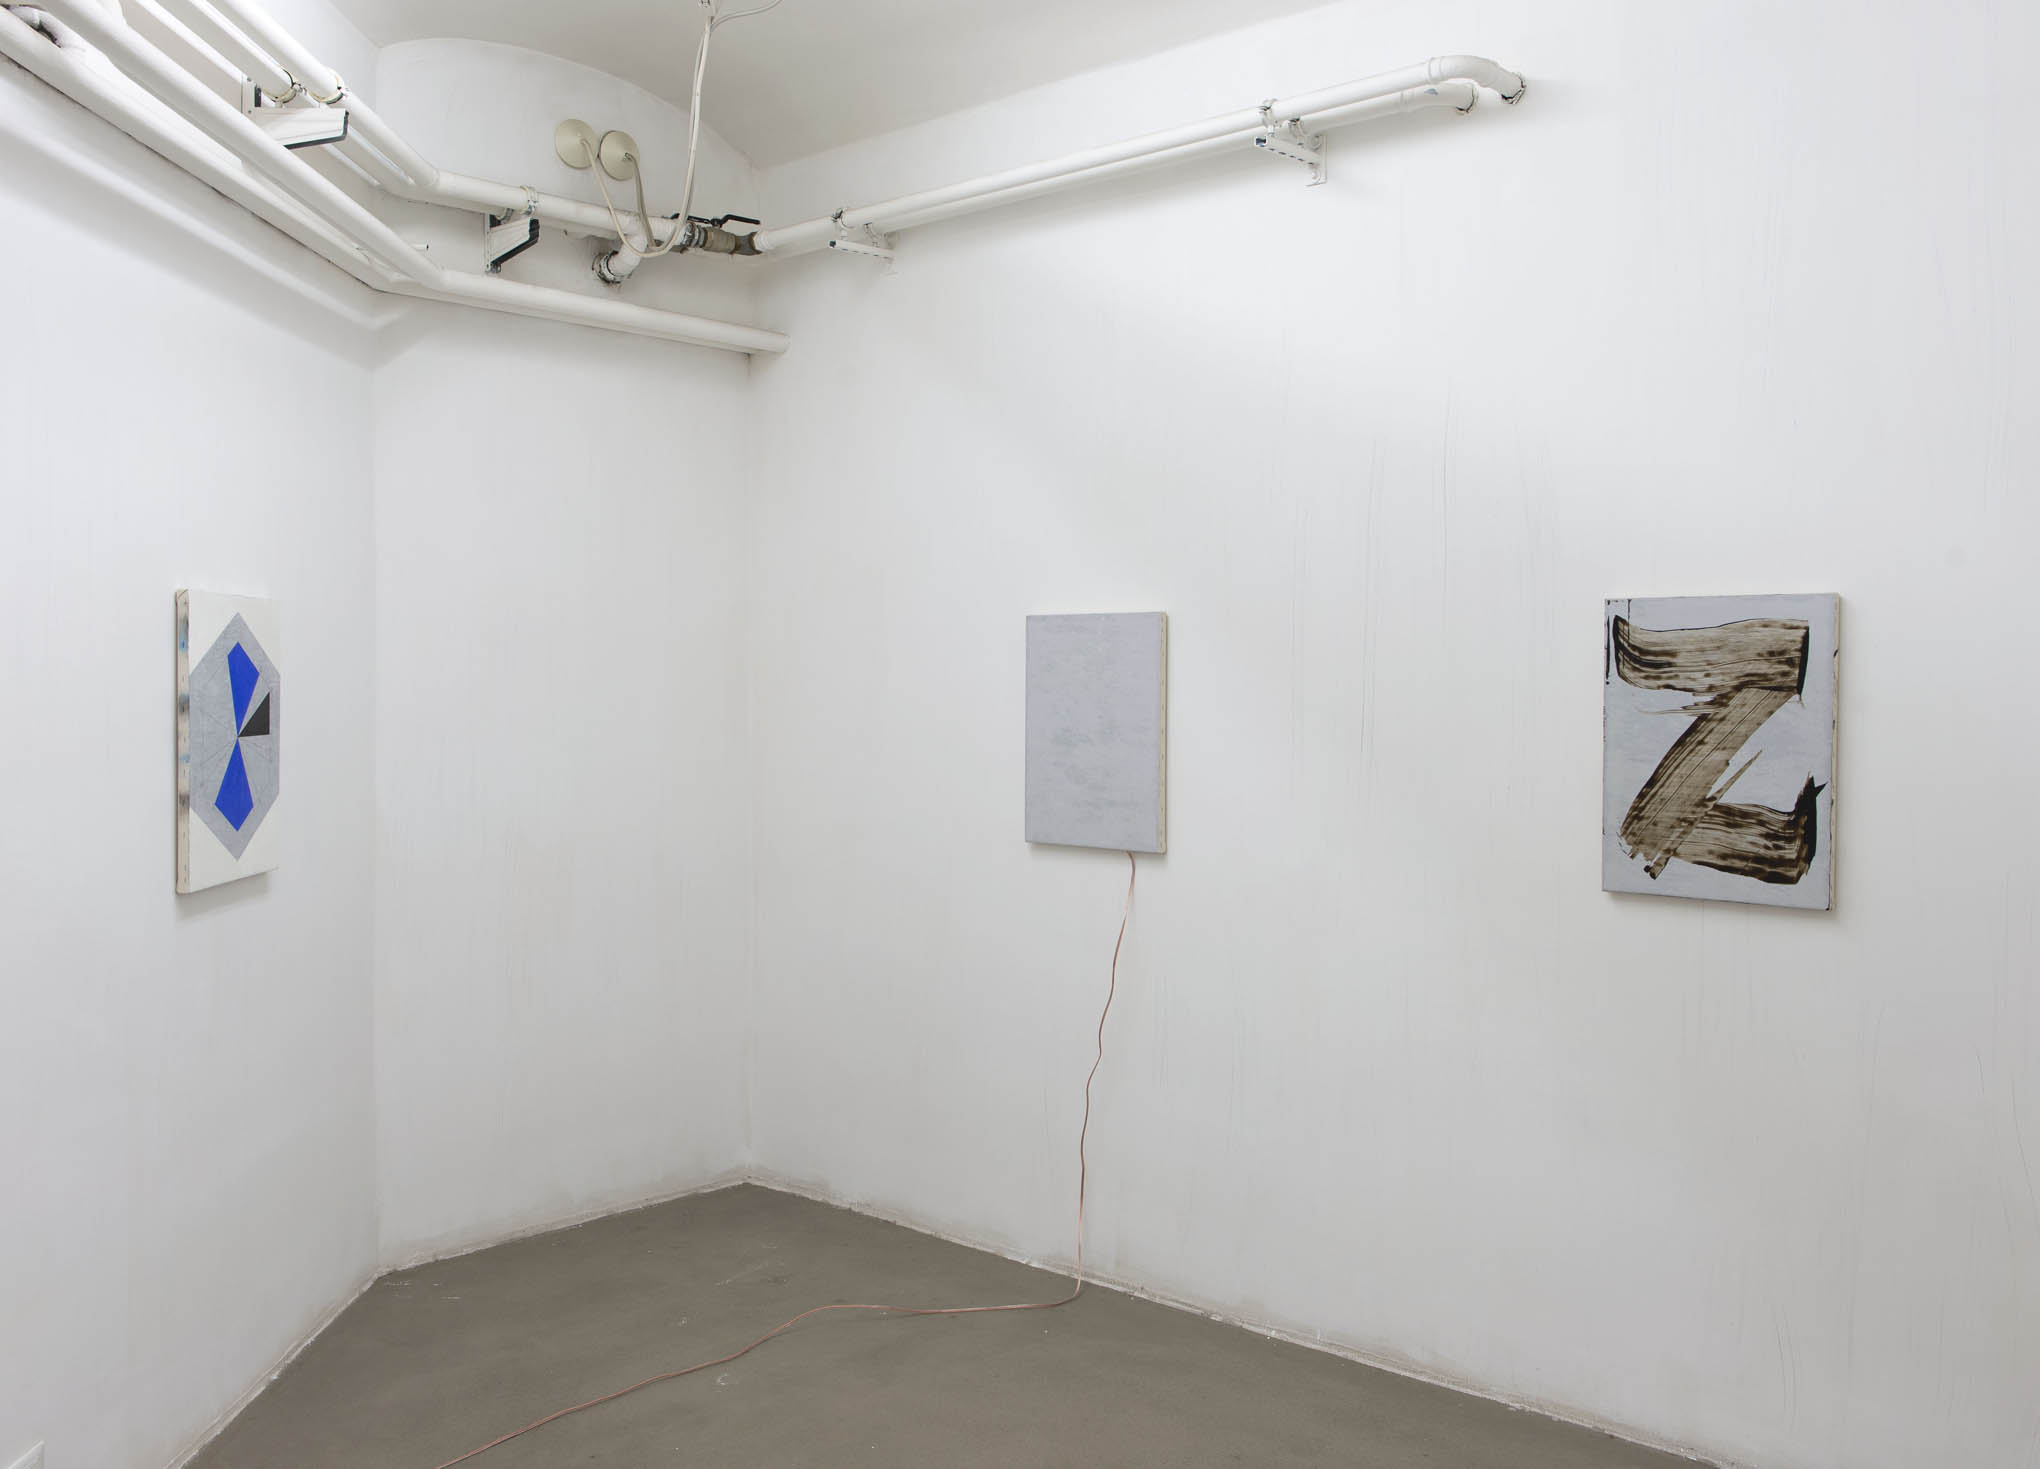 29_FG_Consequences_Installation view_4